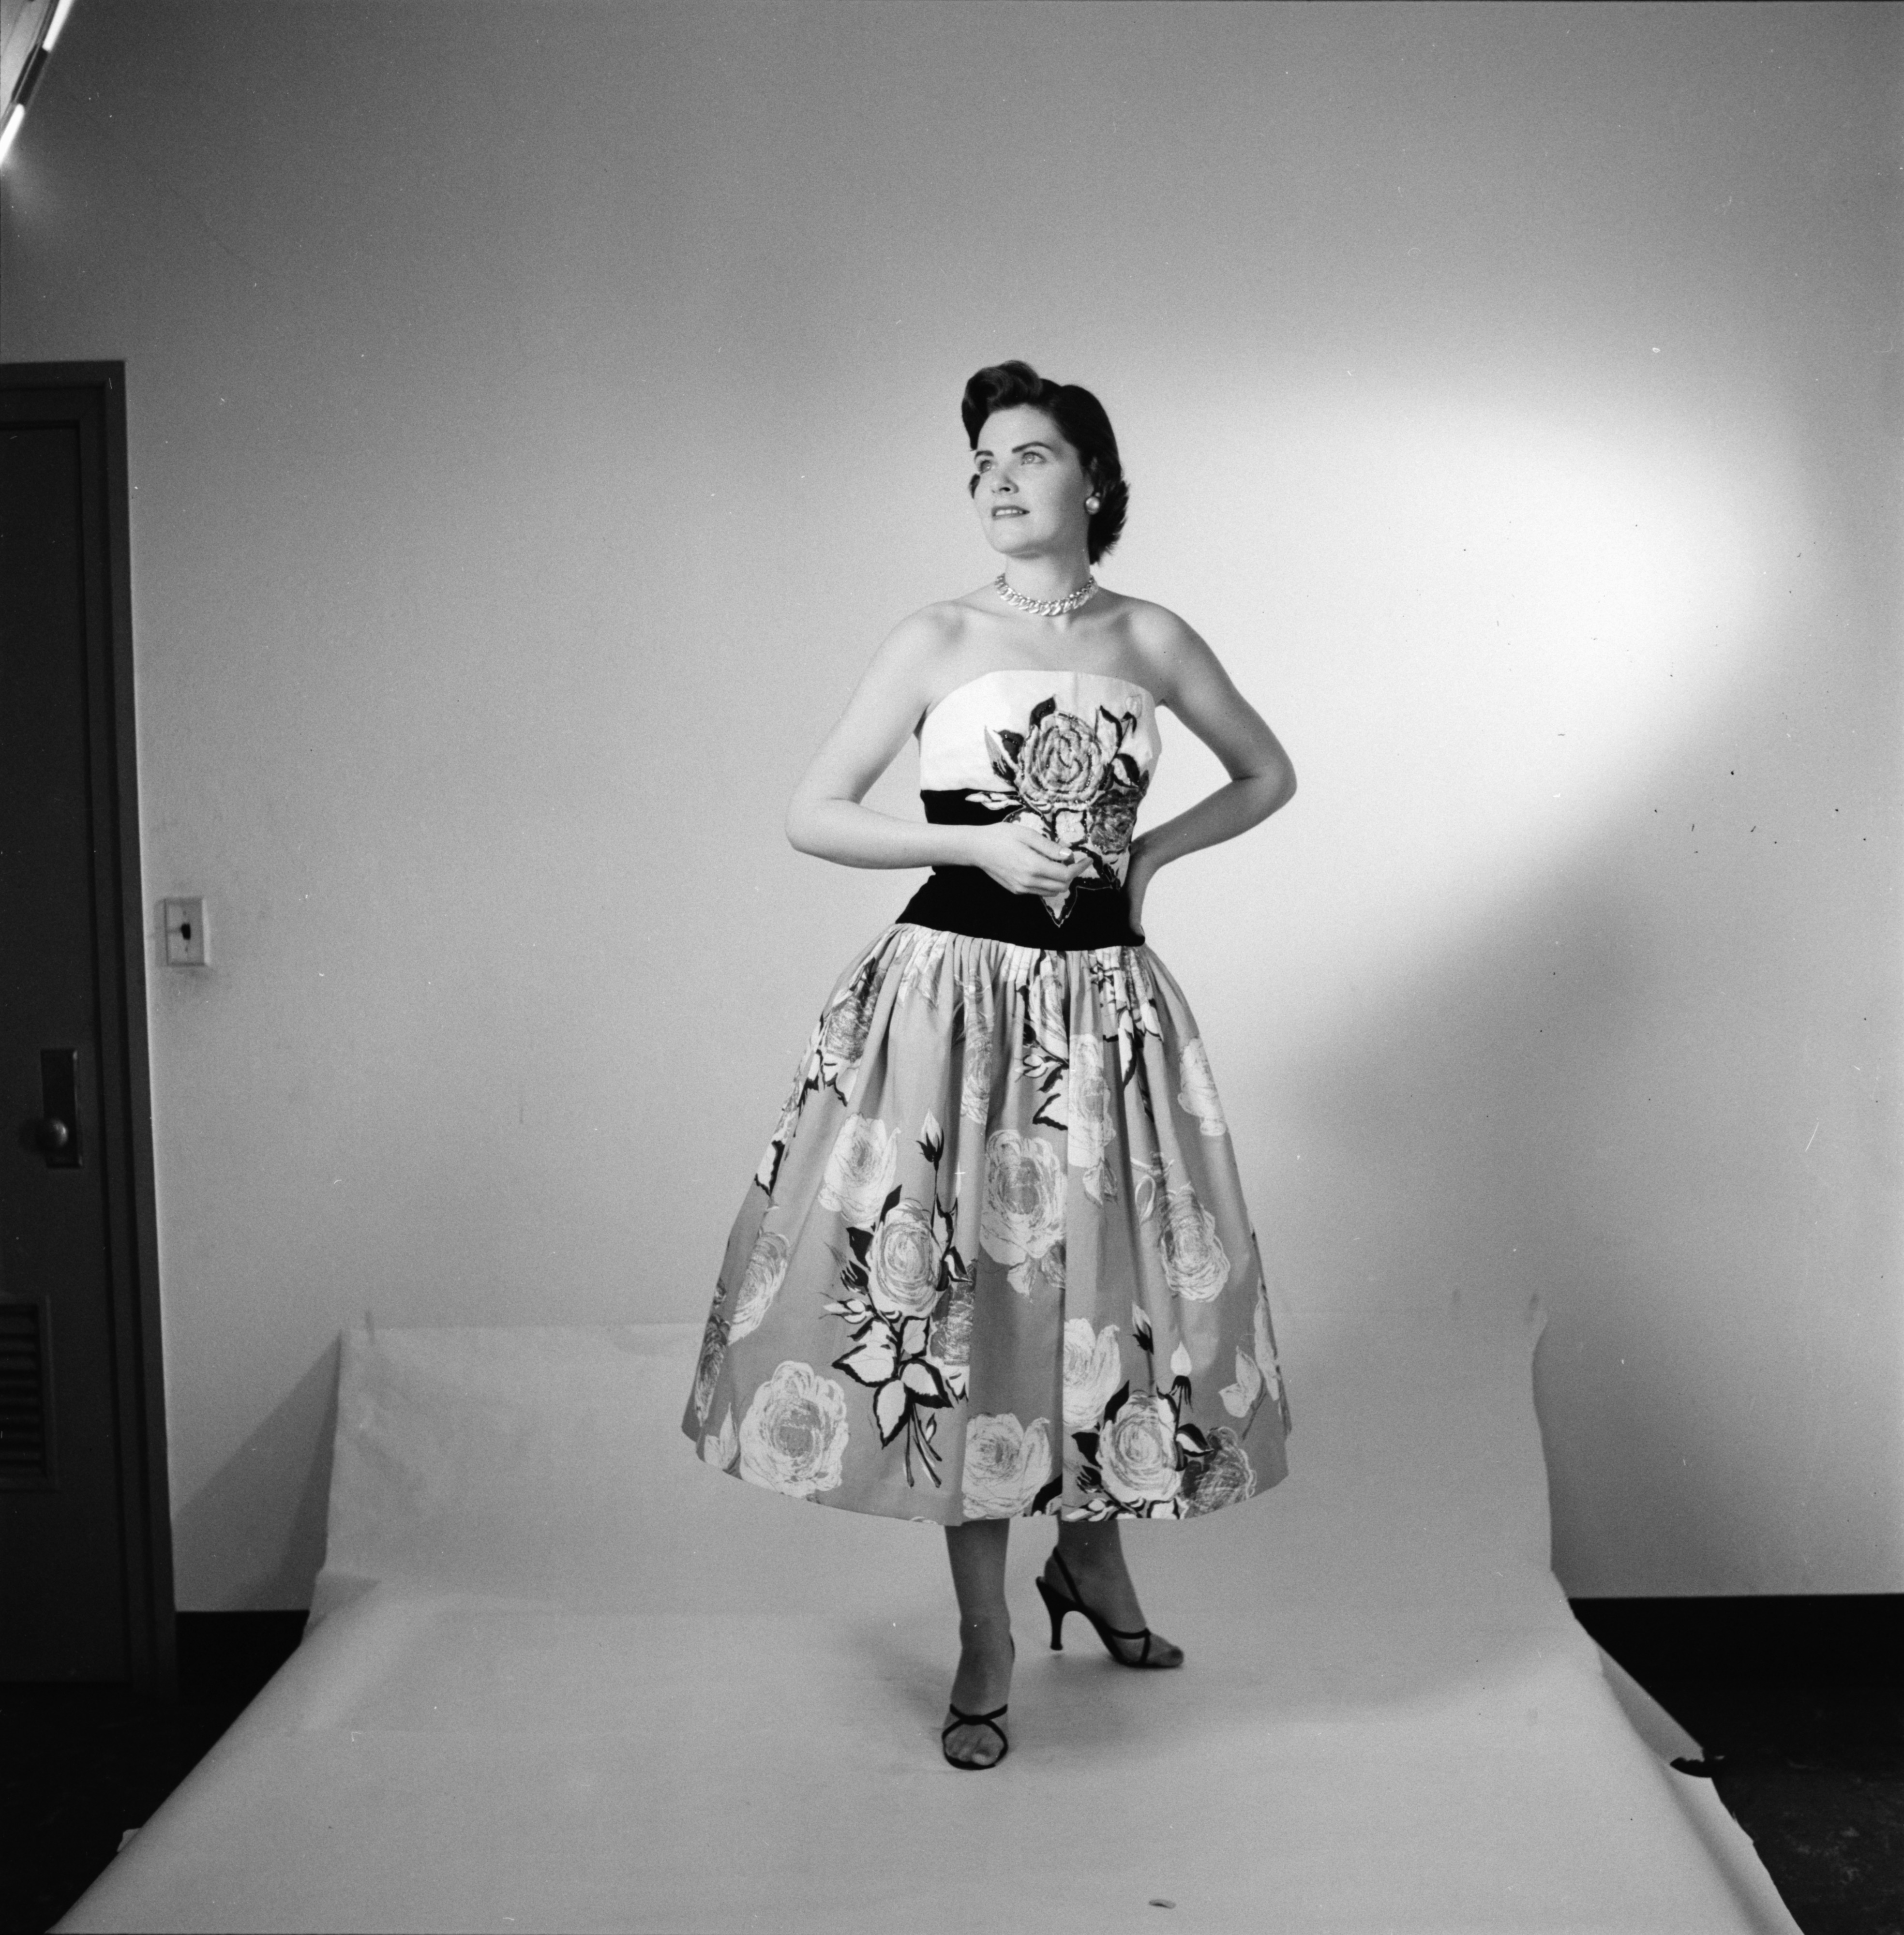 Harriet M. Rose models a cotton printed dress in the Michigan Dames' Fashion Show, March 1957 image